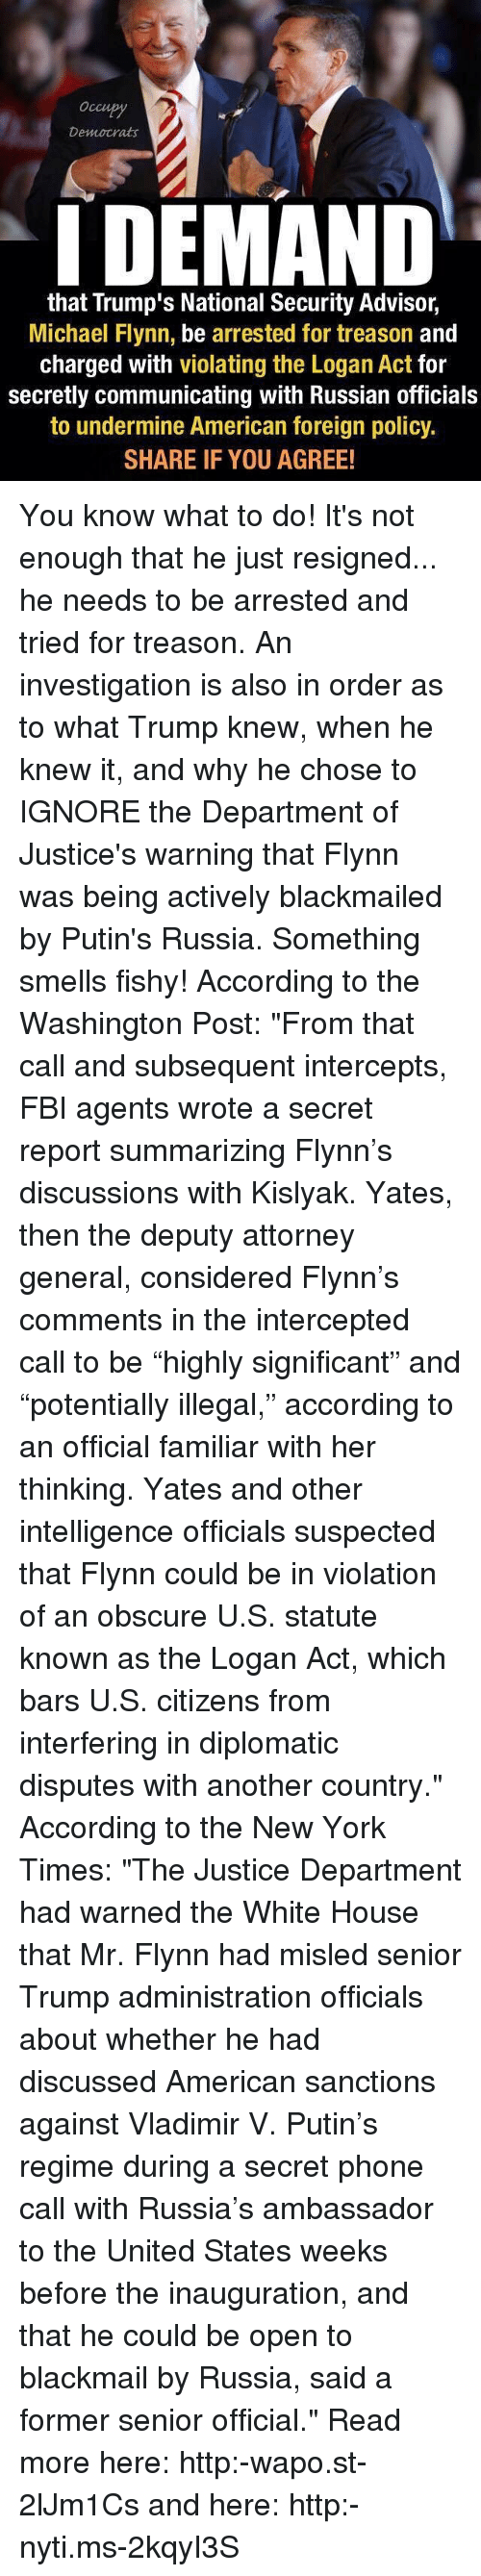 """accordance: Democrats  I DEMAND  that Trump's National Security Advisor,  Michael Flynn, be arrested for treason  and  charged with violating the Logan Act for  secretly communicating with Russian officials  to undermine American foreign policy.  SHARE IF YOU AGREE! You know what to do! It's not enough that he just resigned... he needs to be arrested and tried for treason. An investigation is also in order as to what Trump knew, when he knew it, and why he chose to IGNORE the Department of Justice's warning that Flynn was being actively blackmailed by Putin's Russia. Something smells fishy! According to the Washington Post: """"From that call and subsequent intercepts, FBI agents wrote a secret report summarizing Flynn's discussions with Kislyak. Yates, then the deputy attorney general, considered Flynn's comments in the intercepted call to be """"highly significant"""" and """"potentially illegal,"""" according to an official familiar with her thinking. Yates and other intelligence officials suspected that Flynn could be in violation of an obscure U.S. statute known as the Logan Act, which bars U.S. citizens from interfering in diplomatic disputes with another country."""" According to the New York Times: """"The Justice Department had warned the White House that Mr. Flynn had misled senior Trump administration officials about whether he had discussed American sanctions against Vladimir V. Putin's regime during a secret phone call with Russia's ambassador to the United States weeks before the inauguration, and that he could be open to blackmail by Russia, said a former senior official."""" Read more here: http:-wapo.st-2lJm1Cs and here: http:-nyti.ms-2kqyI3S"""